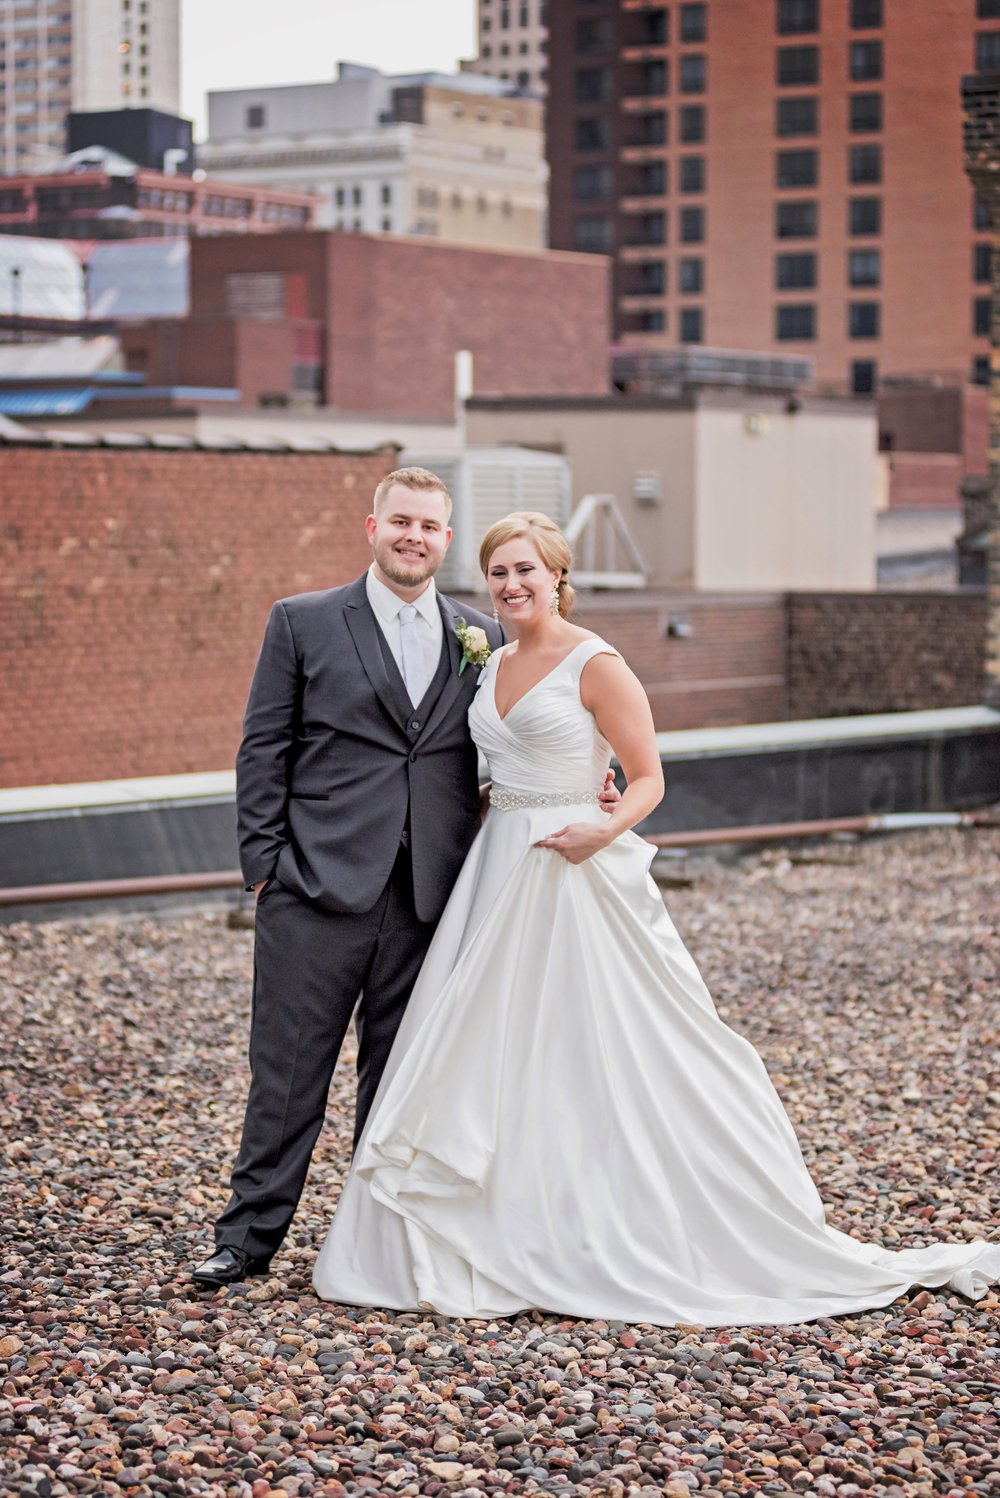 2018-Real-Wedding-Megan-Brenden-Rotella-Photography_0421.jpg